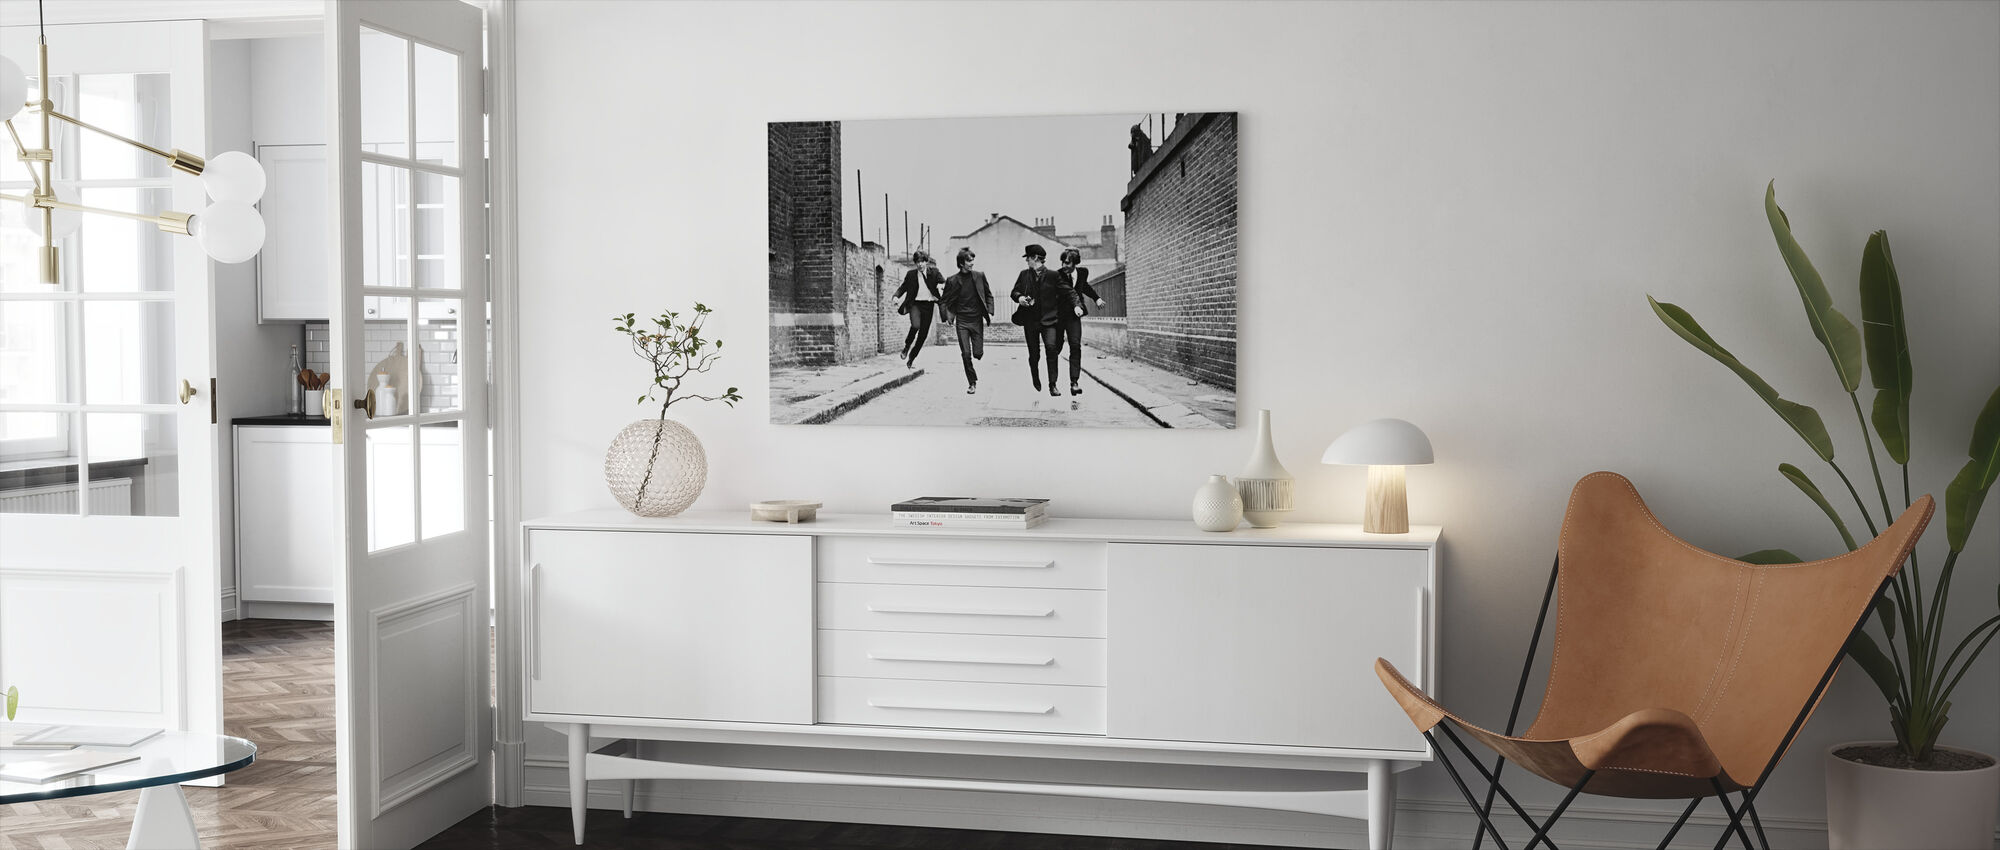 Beatles in a Hard Days Night - Canvas print - Living Room